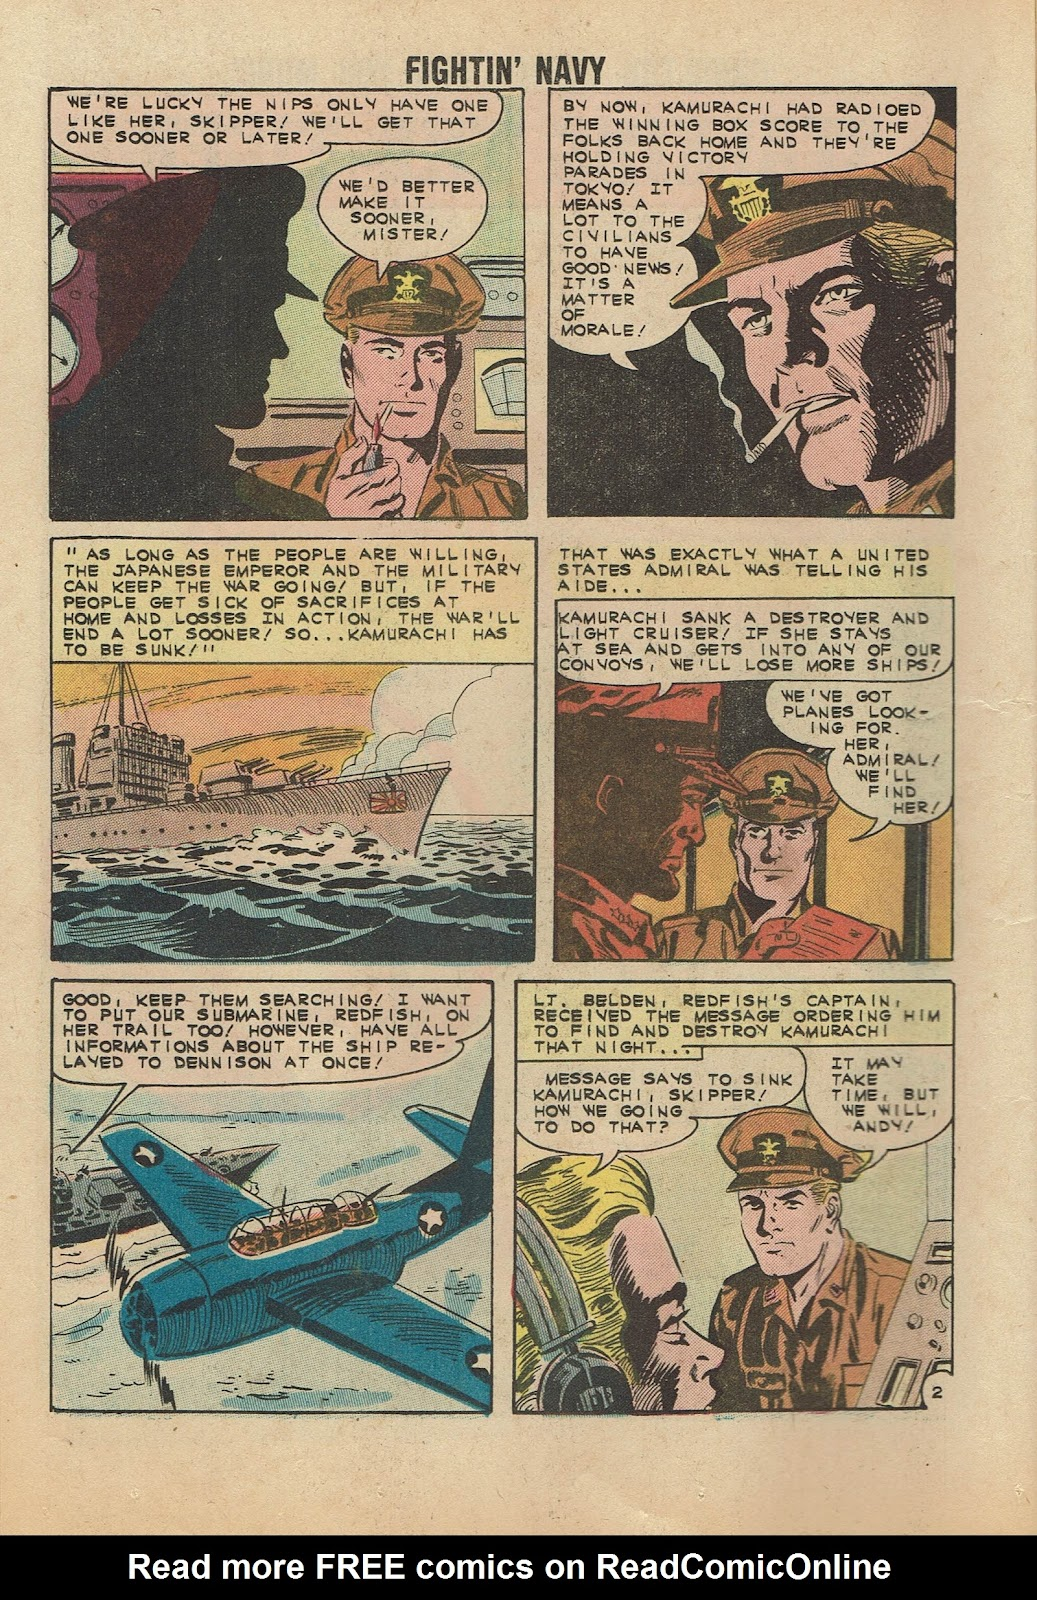 Read online Fightin' Navy comic -  Issue #104 - 12